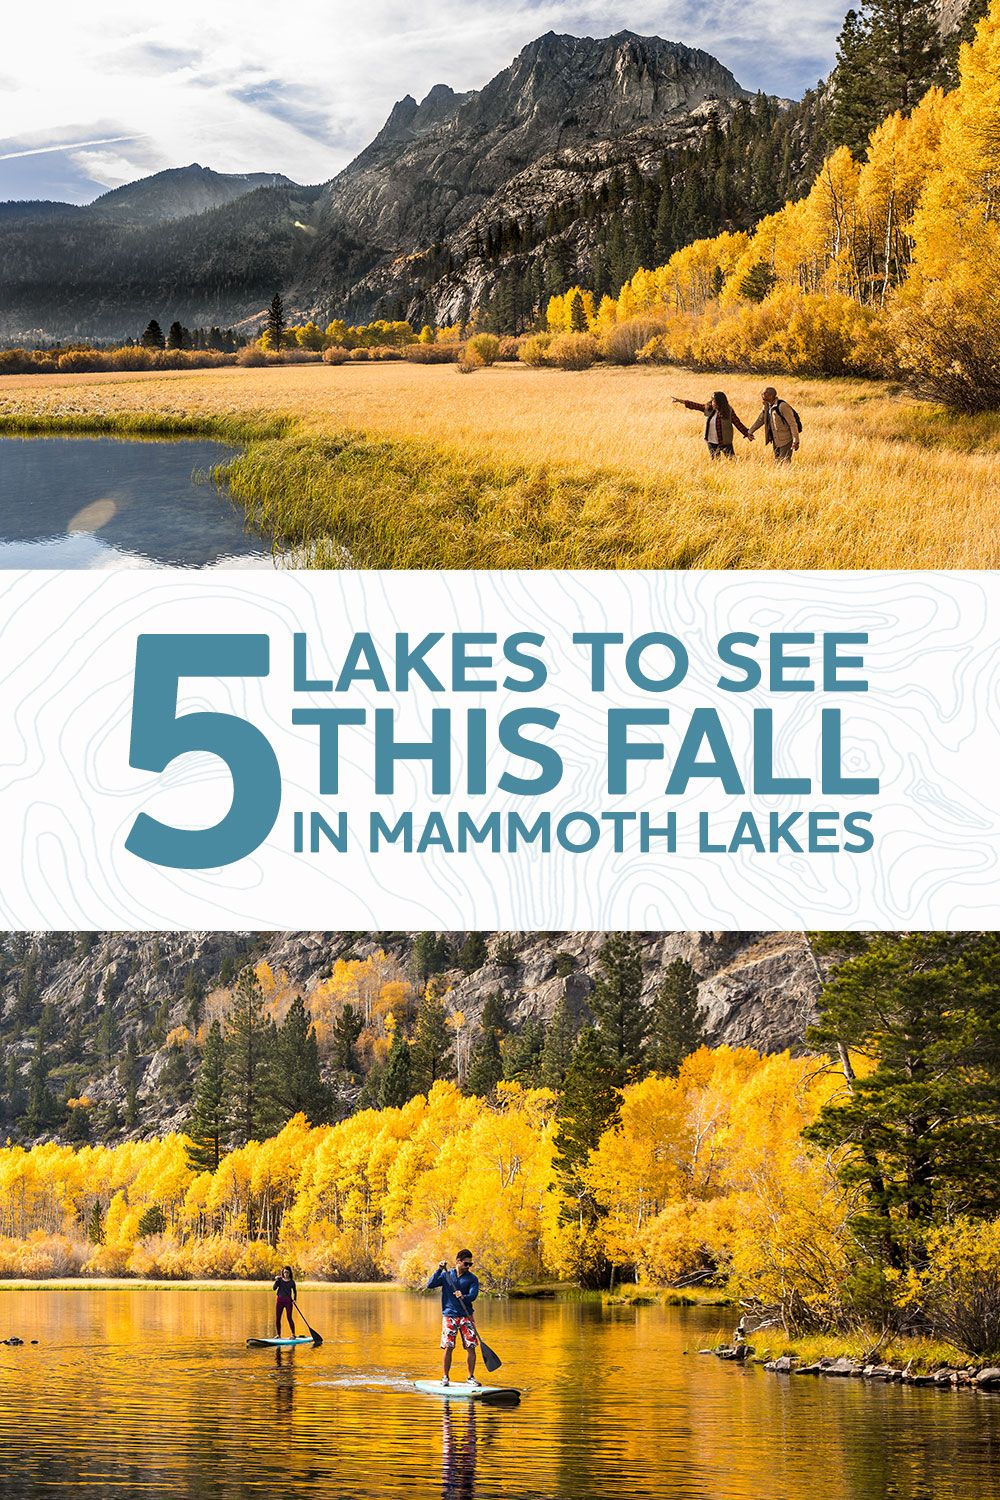 Top 5 Lakes For Fall Colors In The Eastern Sierra With Images